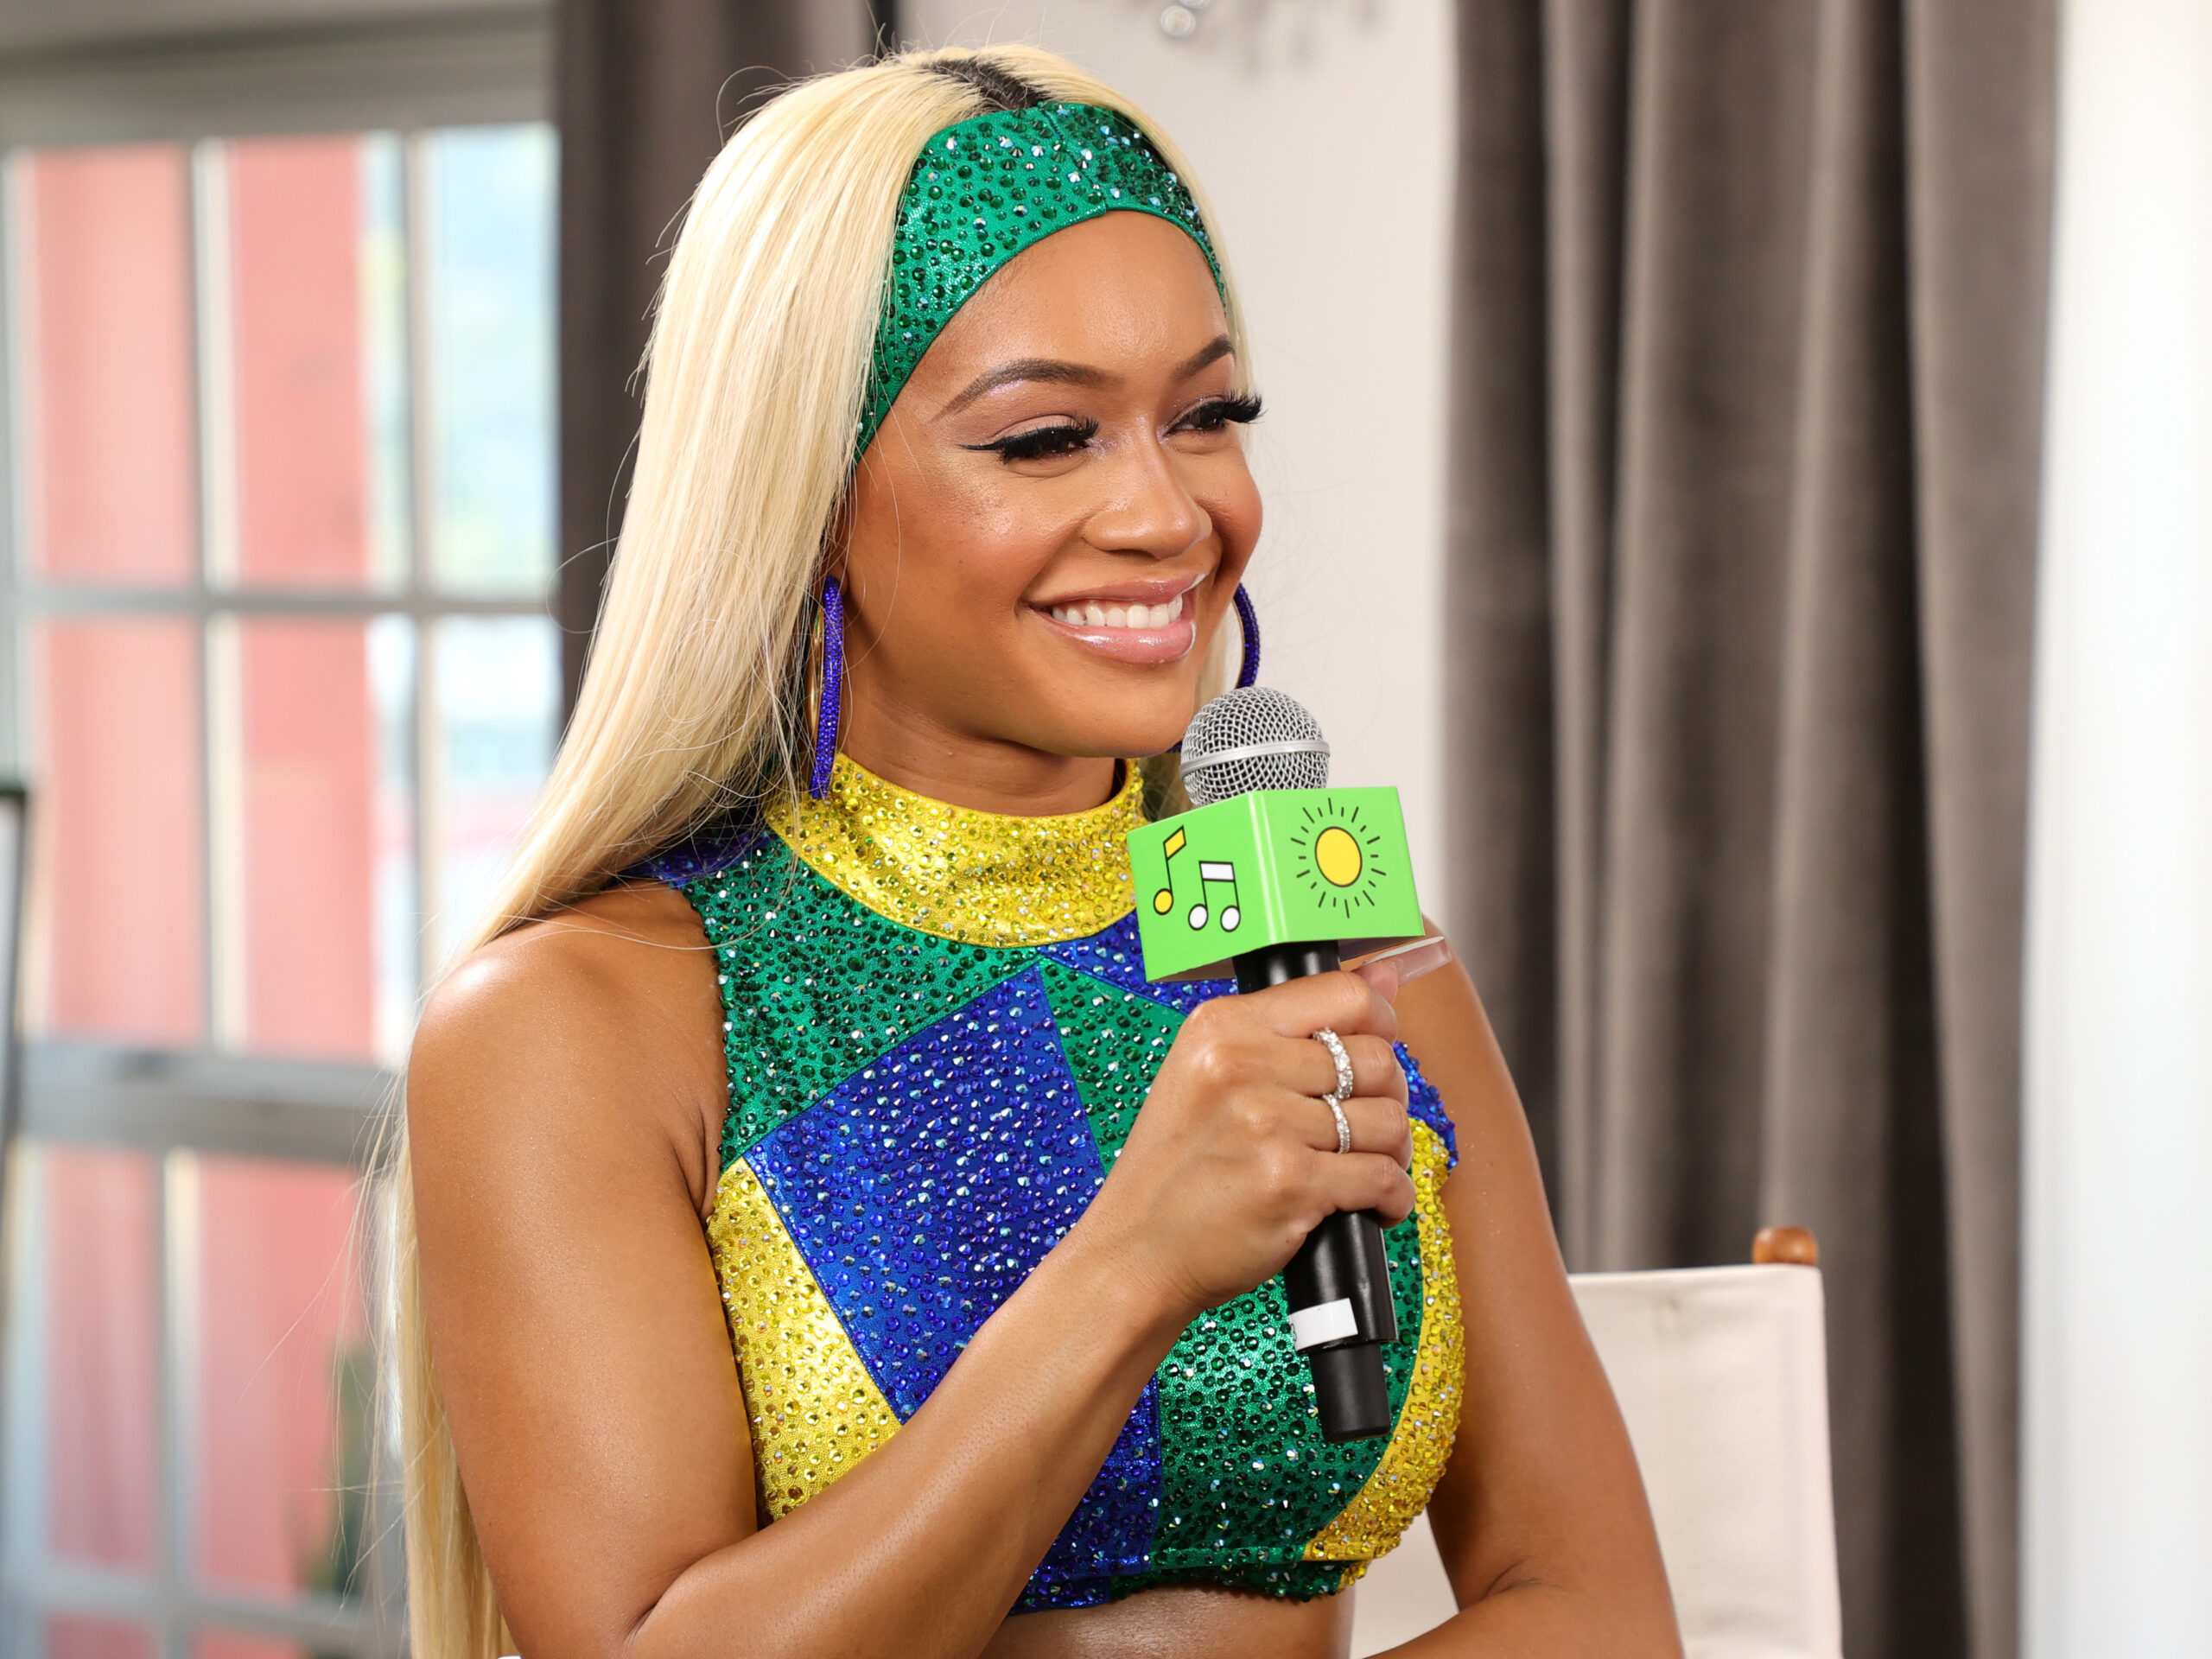 SAWEETIE REDUCES THE AMOUNT OF QUALITY TIME SPENT WITH QUAVO